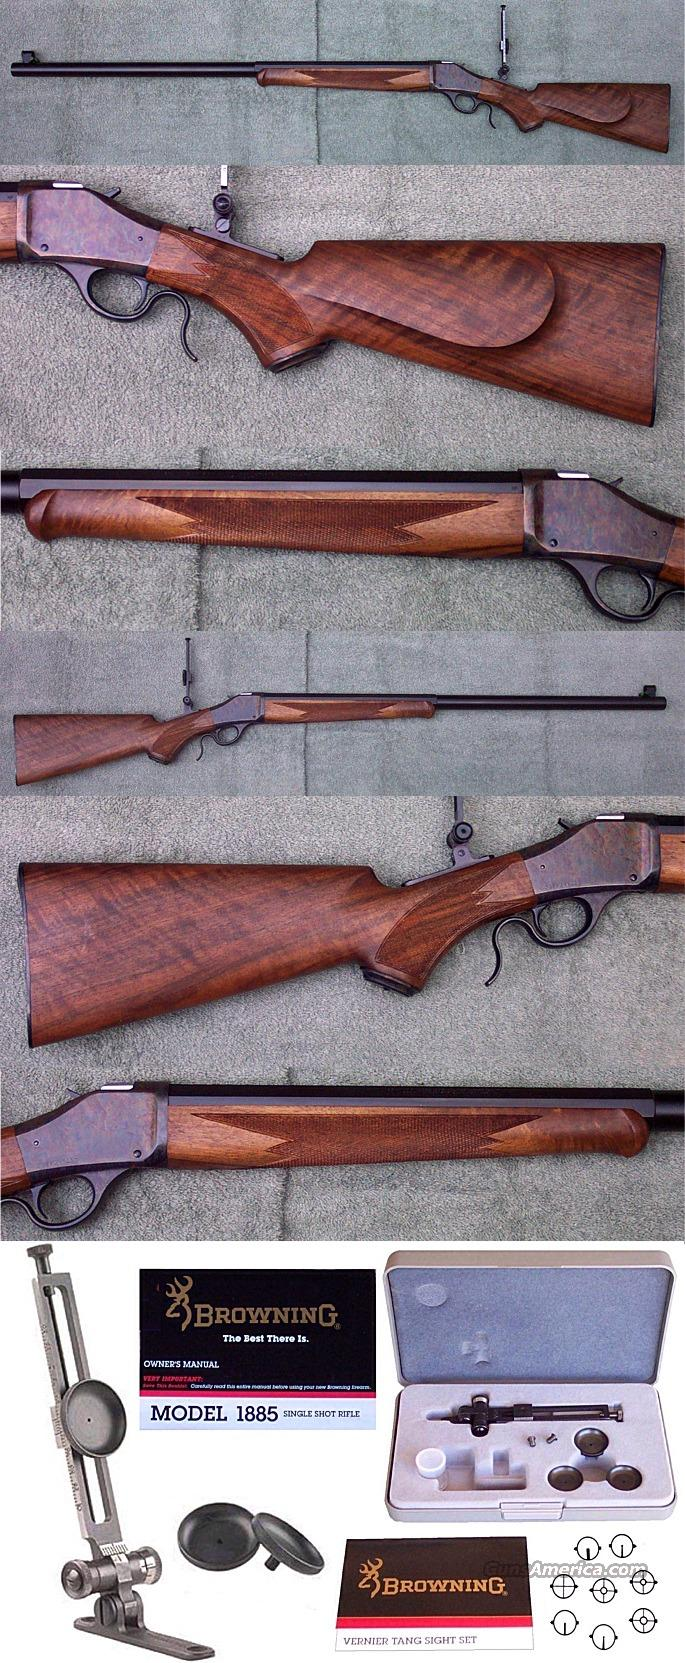 NIB Browning 1885 High Wall .45-70 BPCR  Guns > Rifles > Browning Rifles > Singe Shot